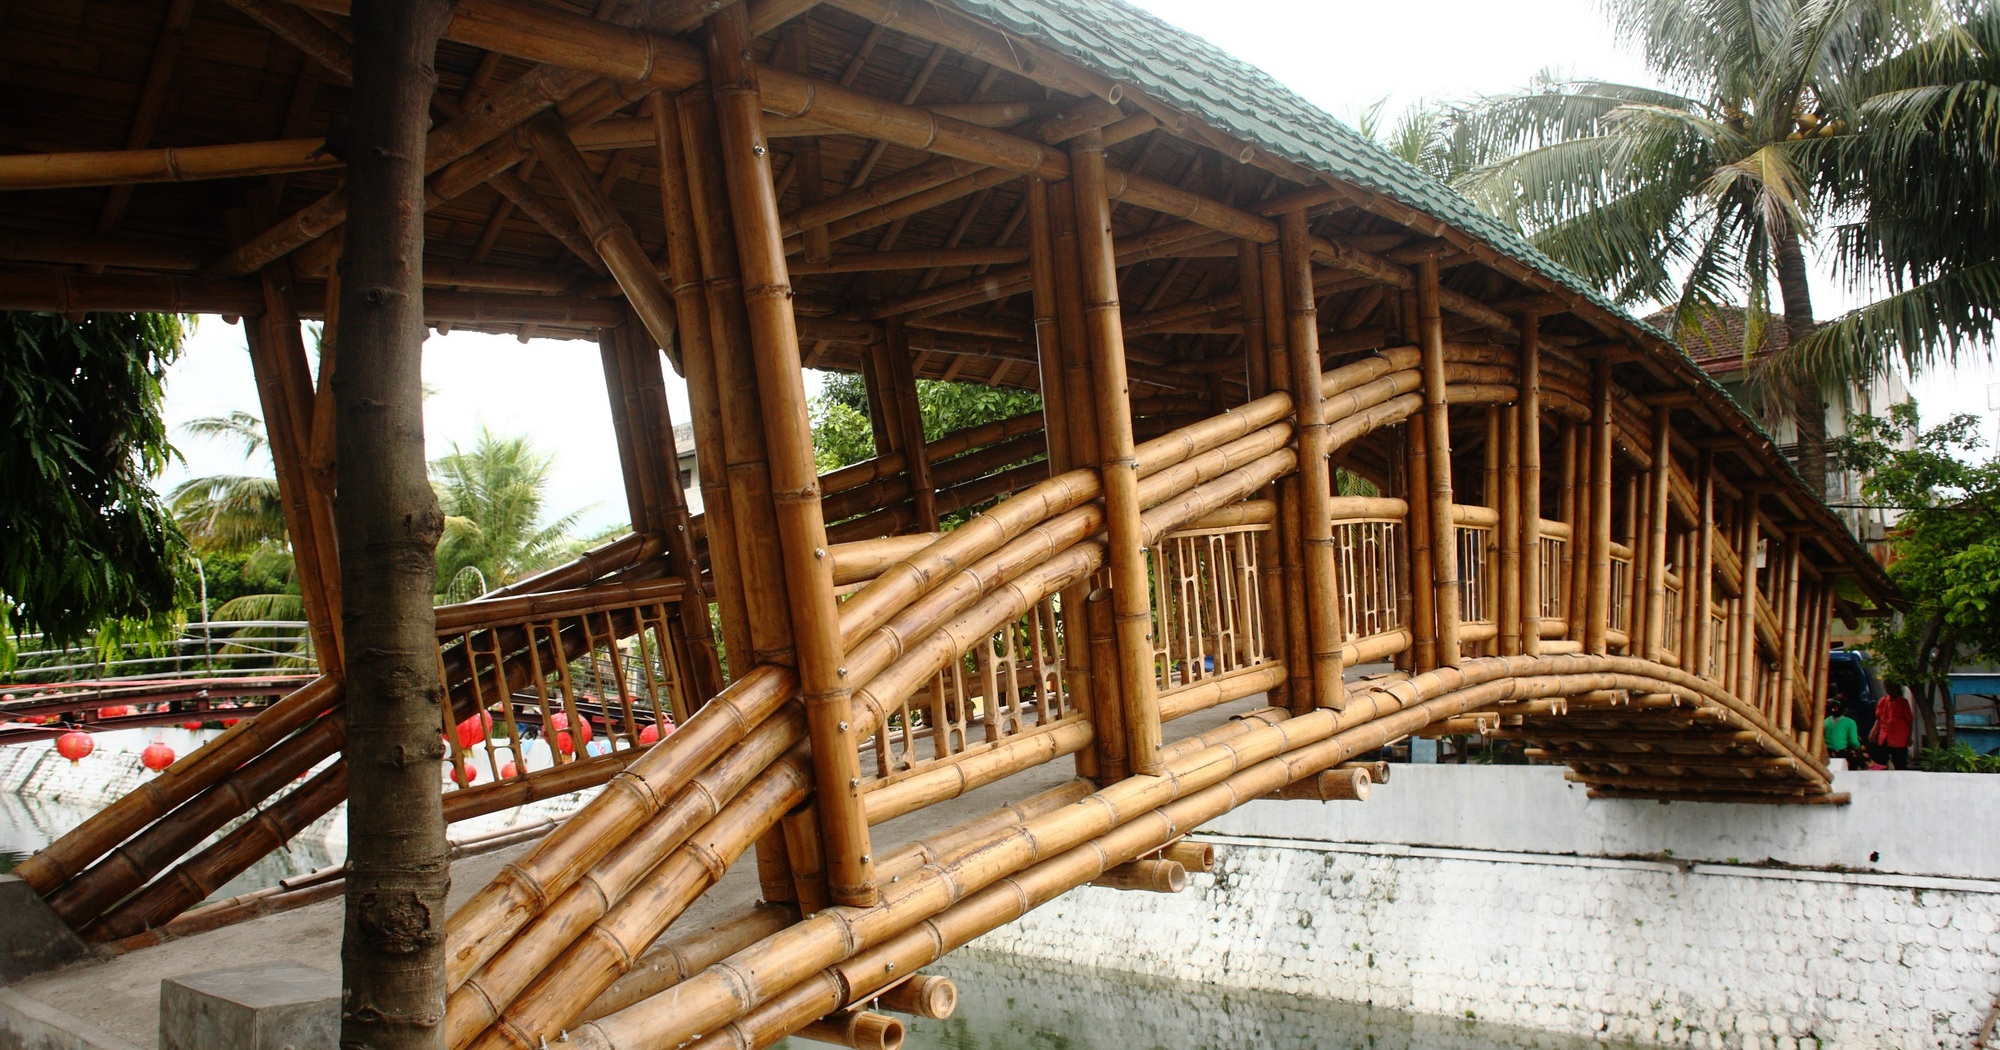 Bamboo Bridge In Indonesia Demonstrates Sustainable